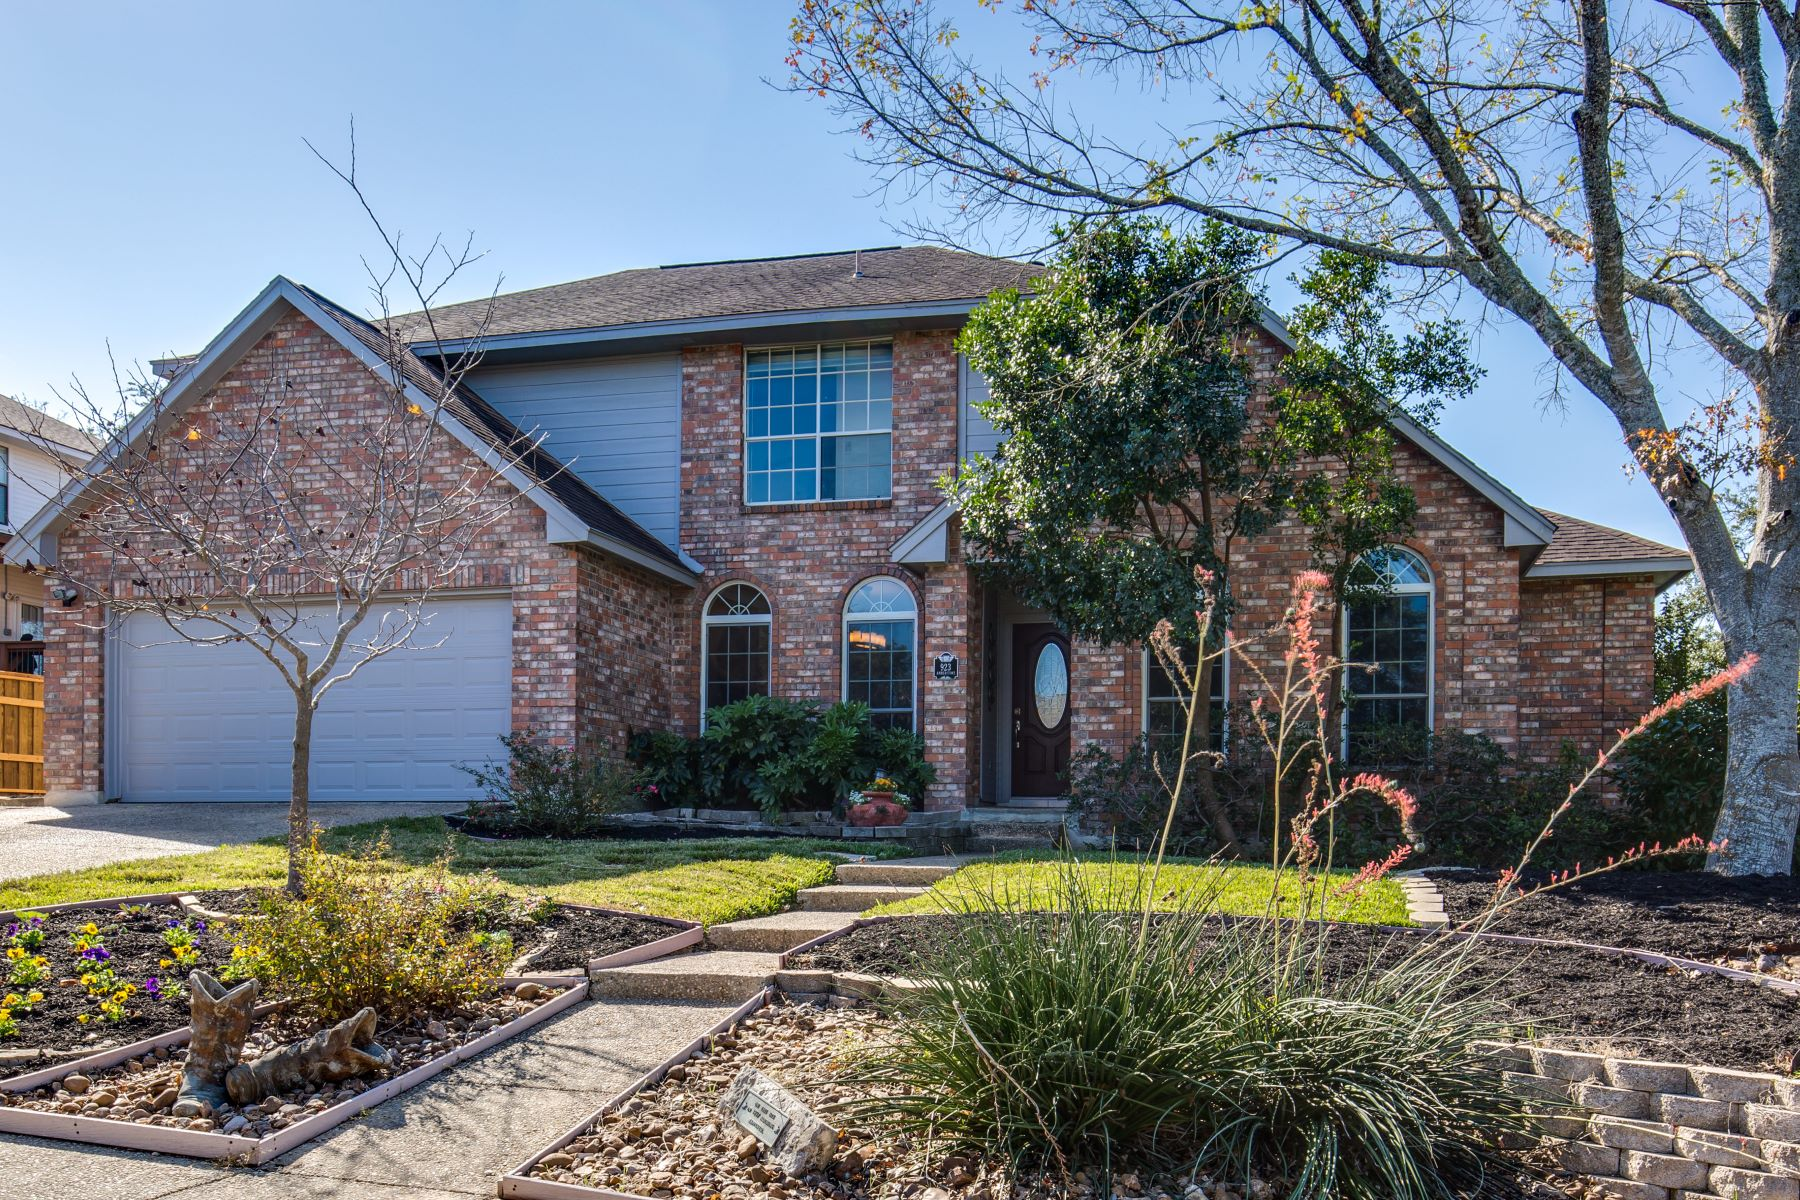 Single Family Home for Sale at Beautifully Updated Home 923 Amberstone Drive San Antonio, Texas 78258 United States